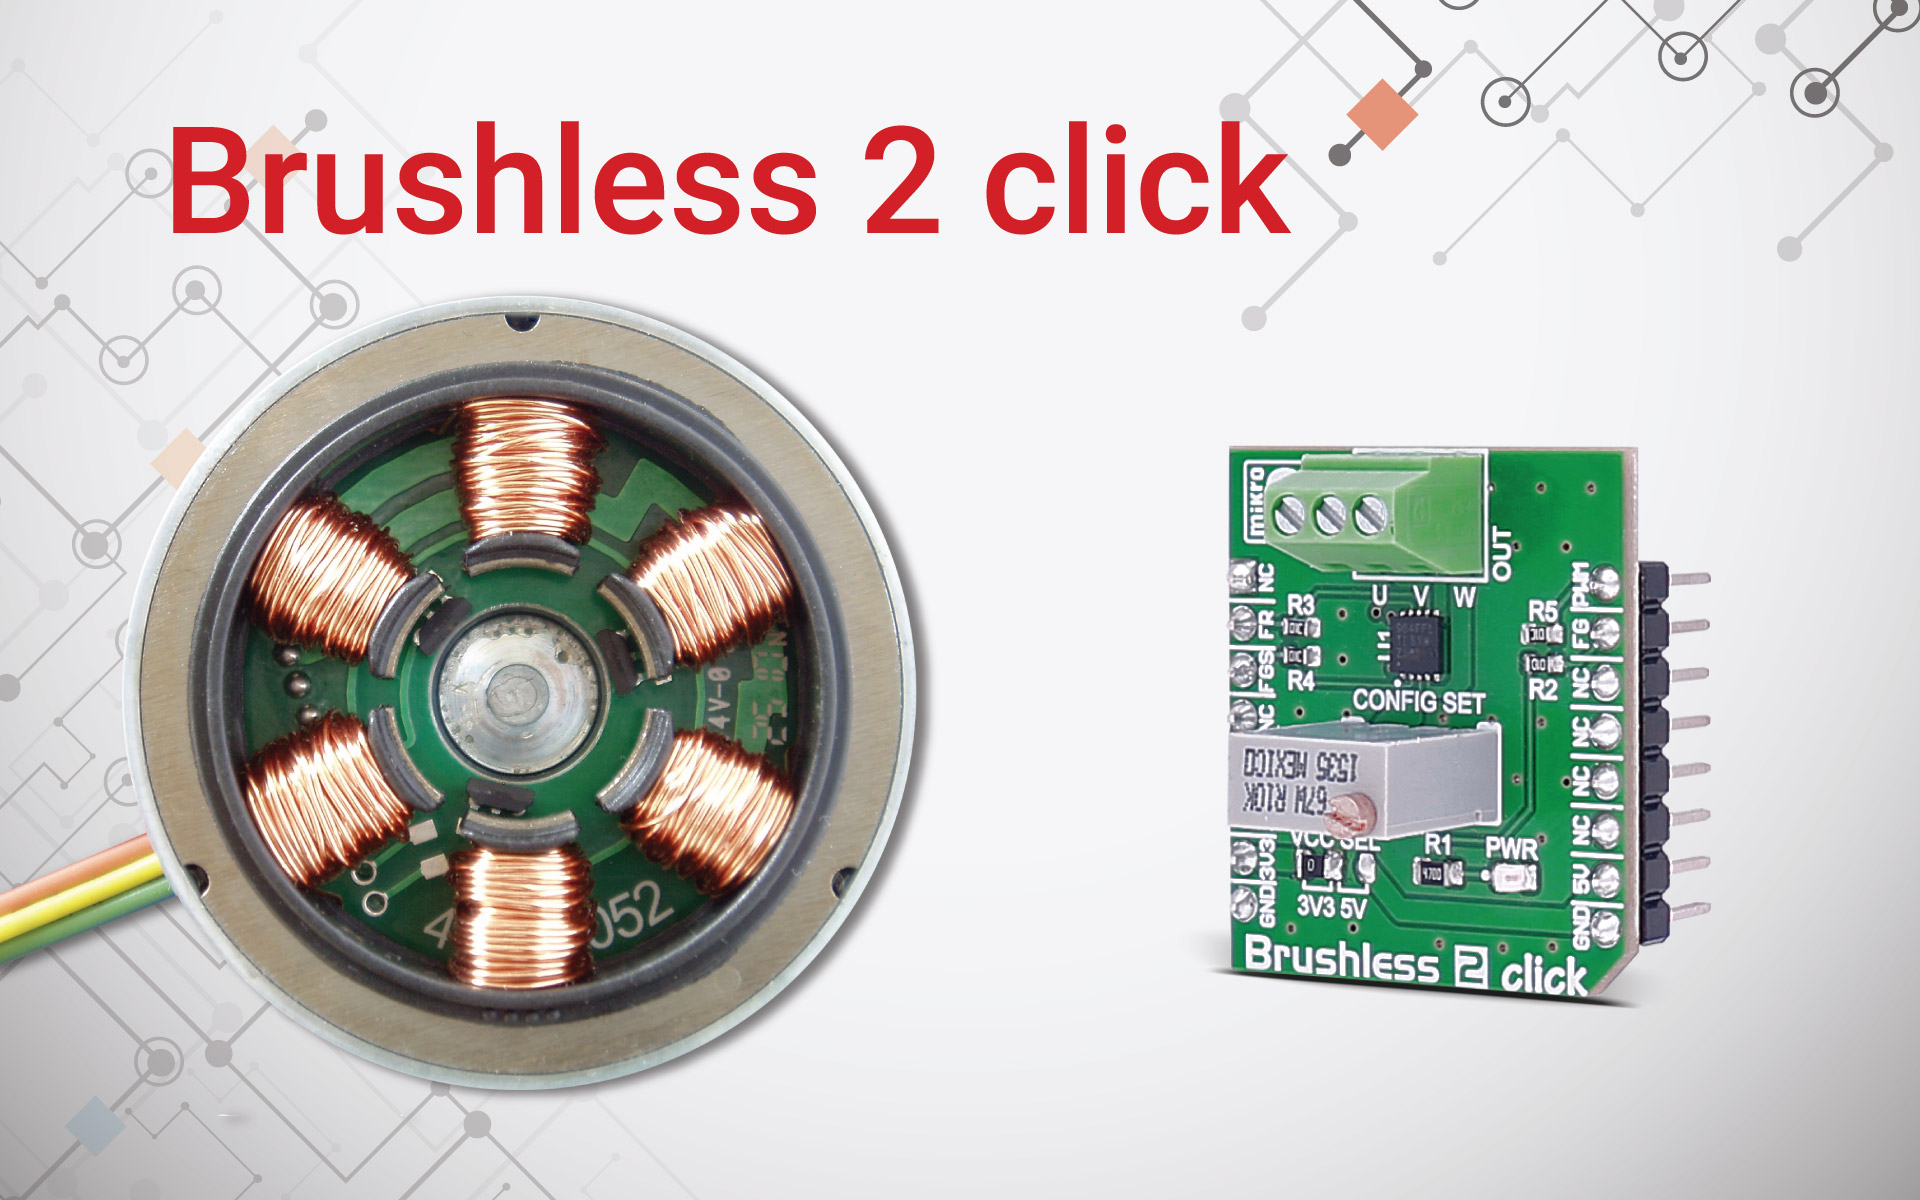 Brushless 2 click - no sparking, no electrical noise, no brushes to wear out